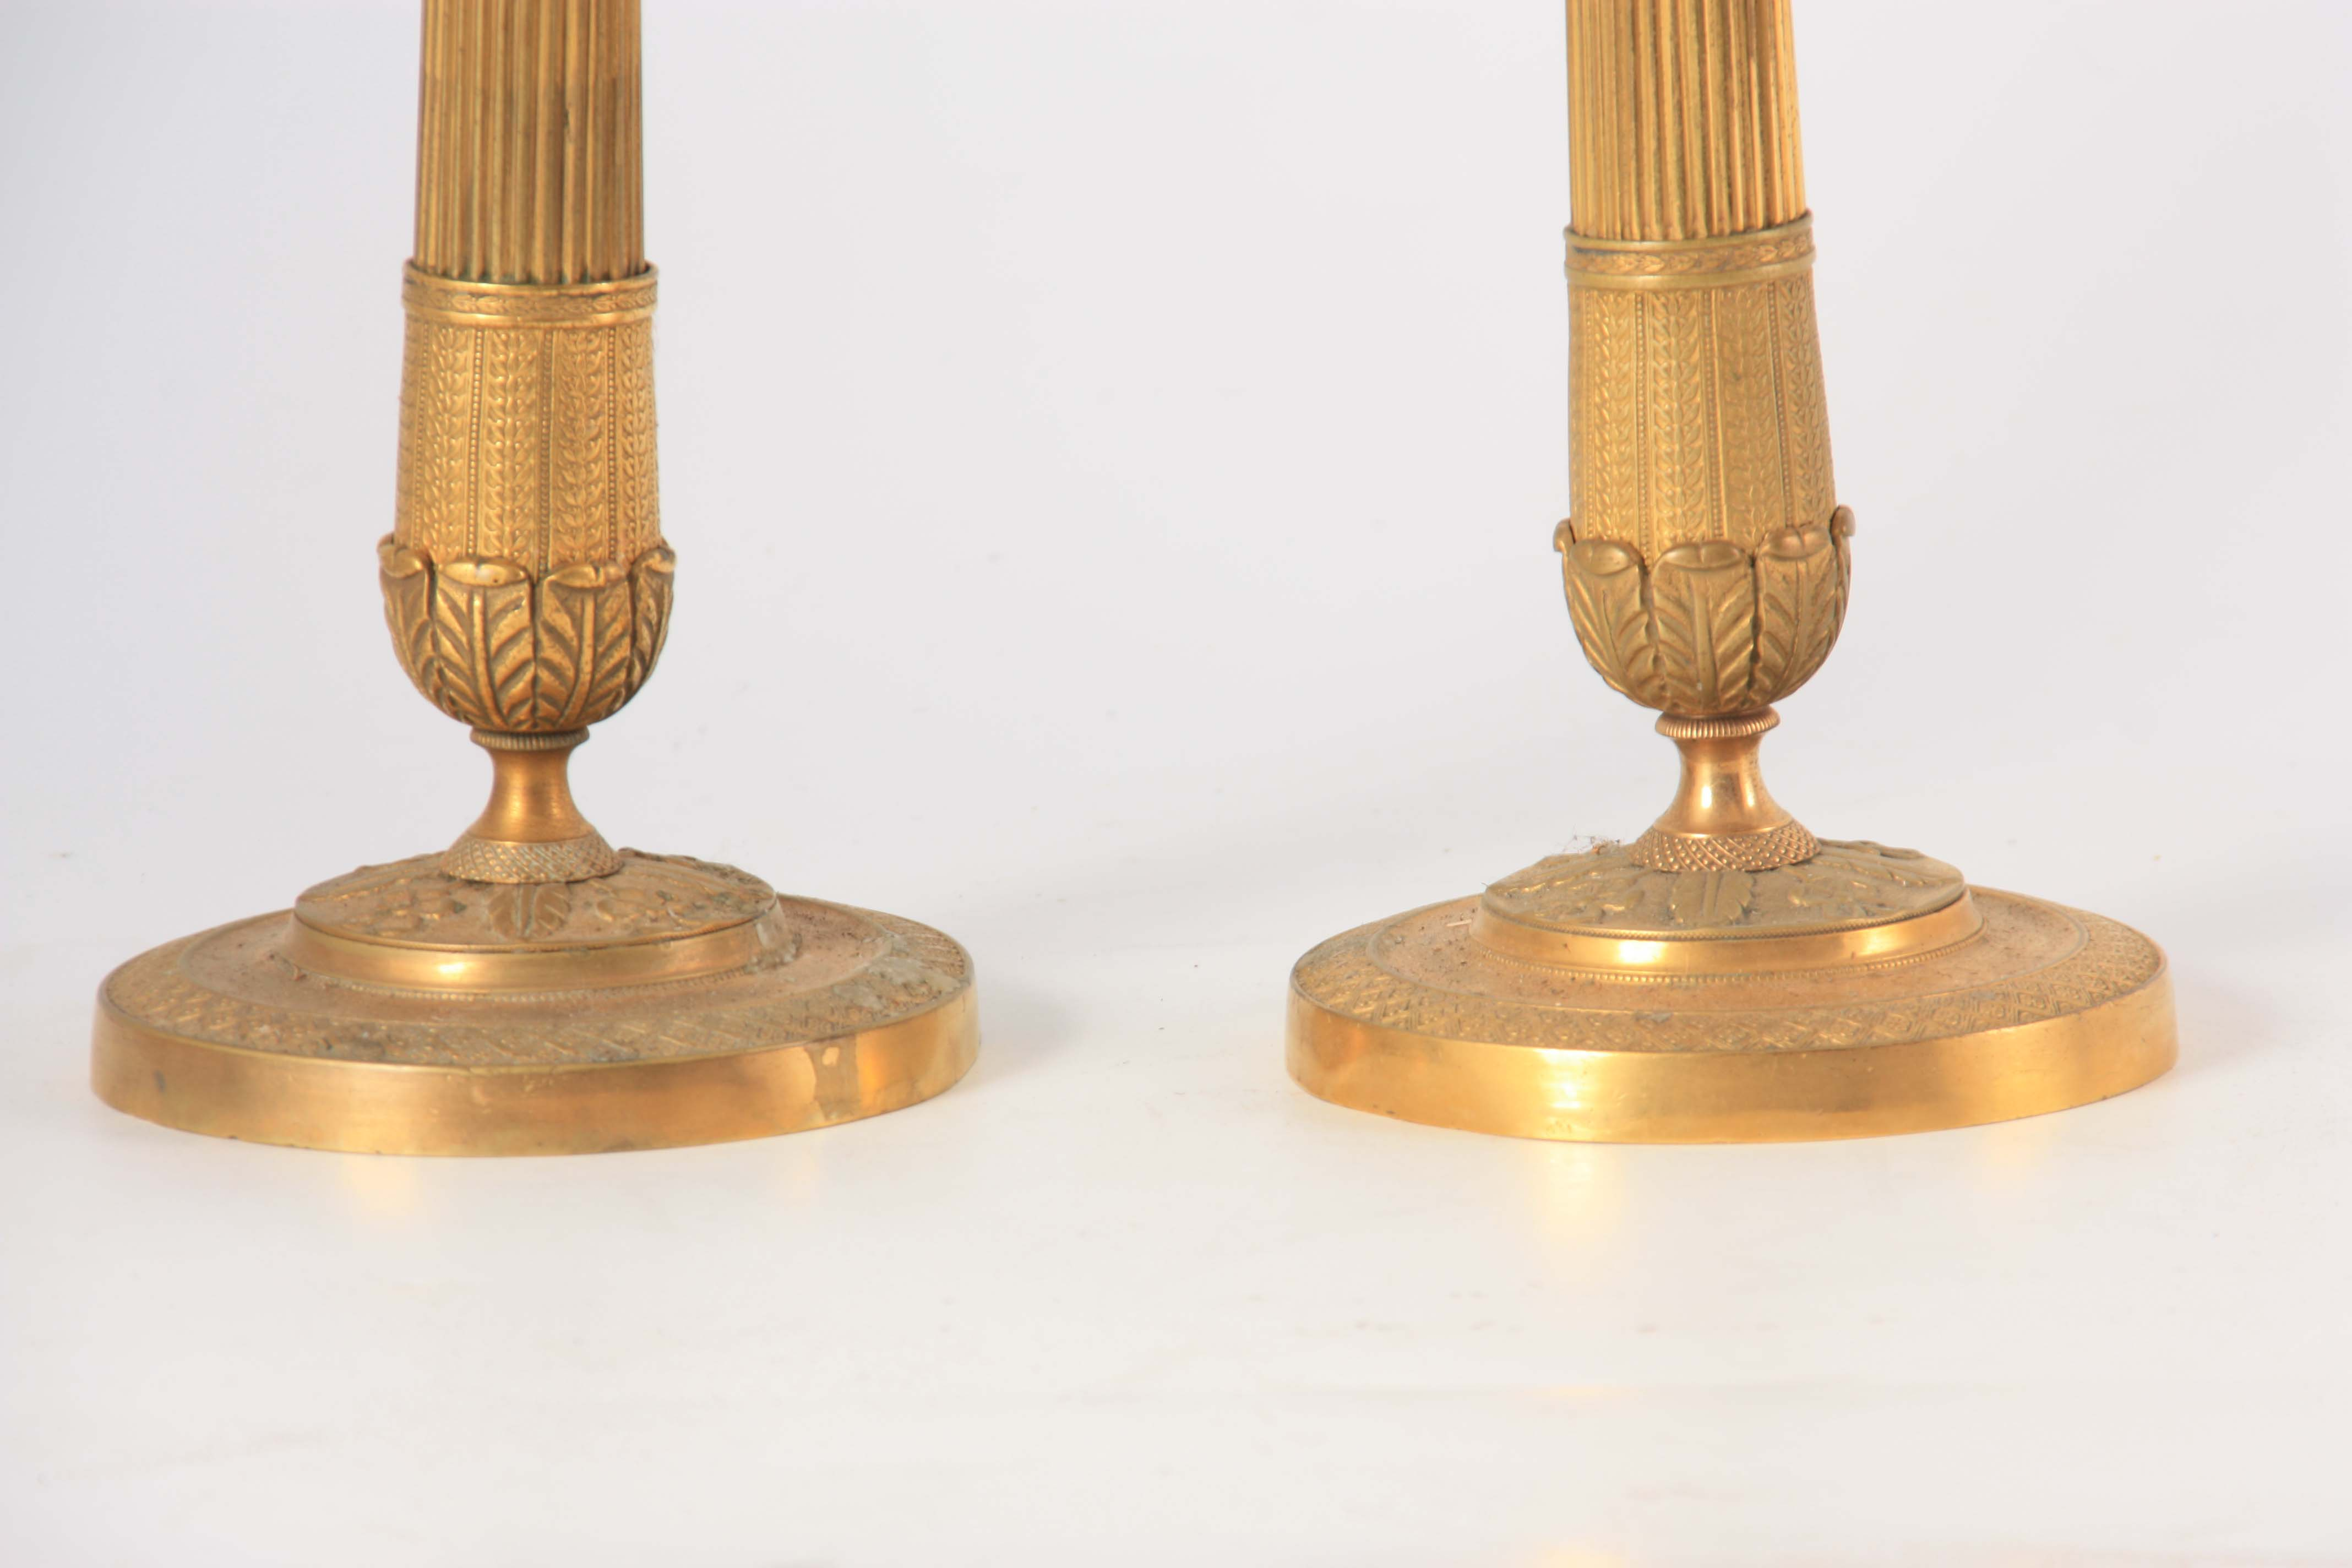 A PAIR OF 19TH CENTURY FRENCH EMPIRE GILT BRASS CANDLESTICKS of classical form with leaf cast scones - Image 3 of 4